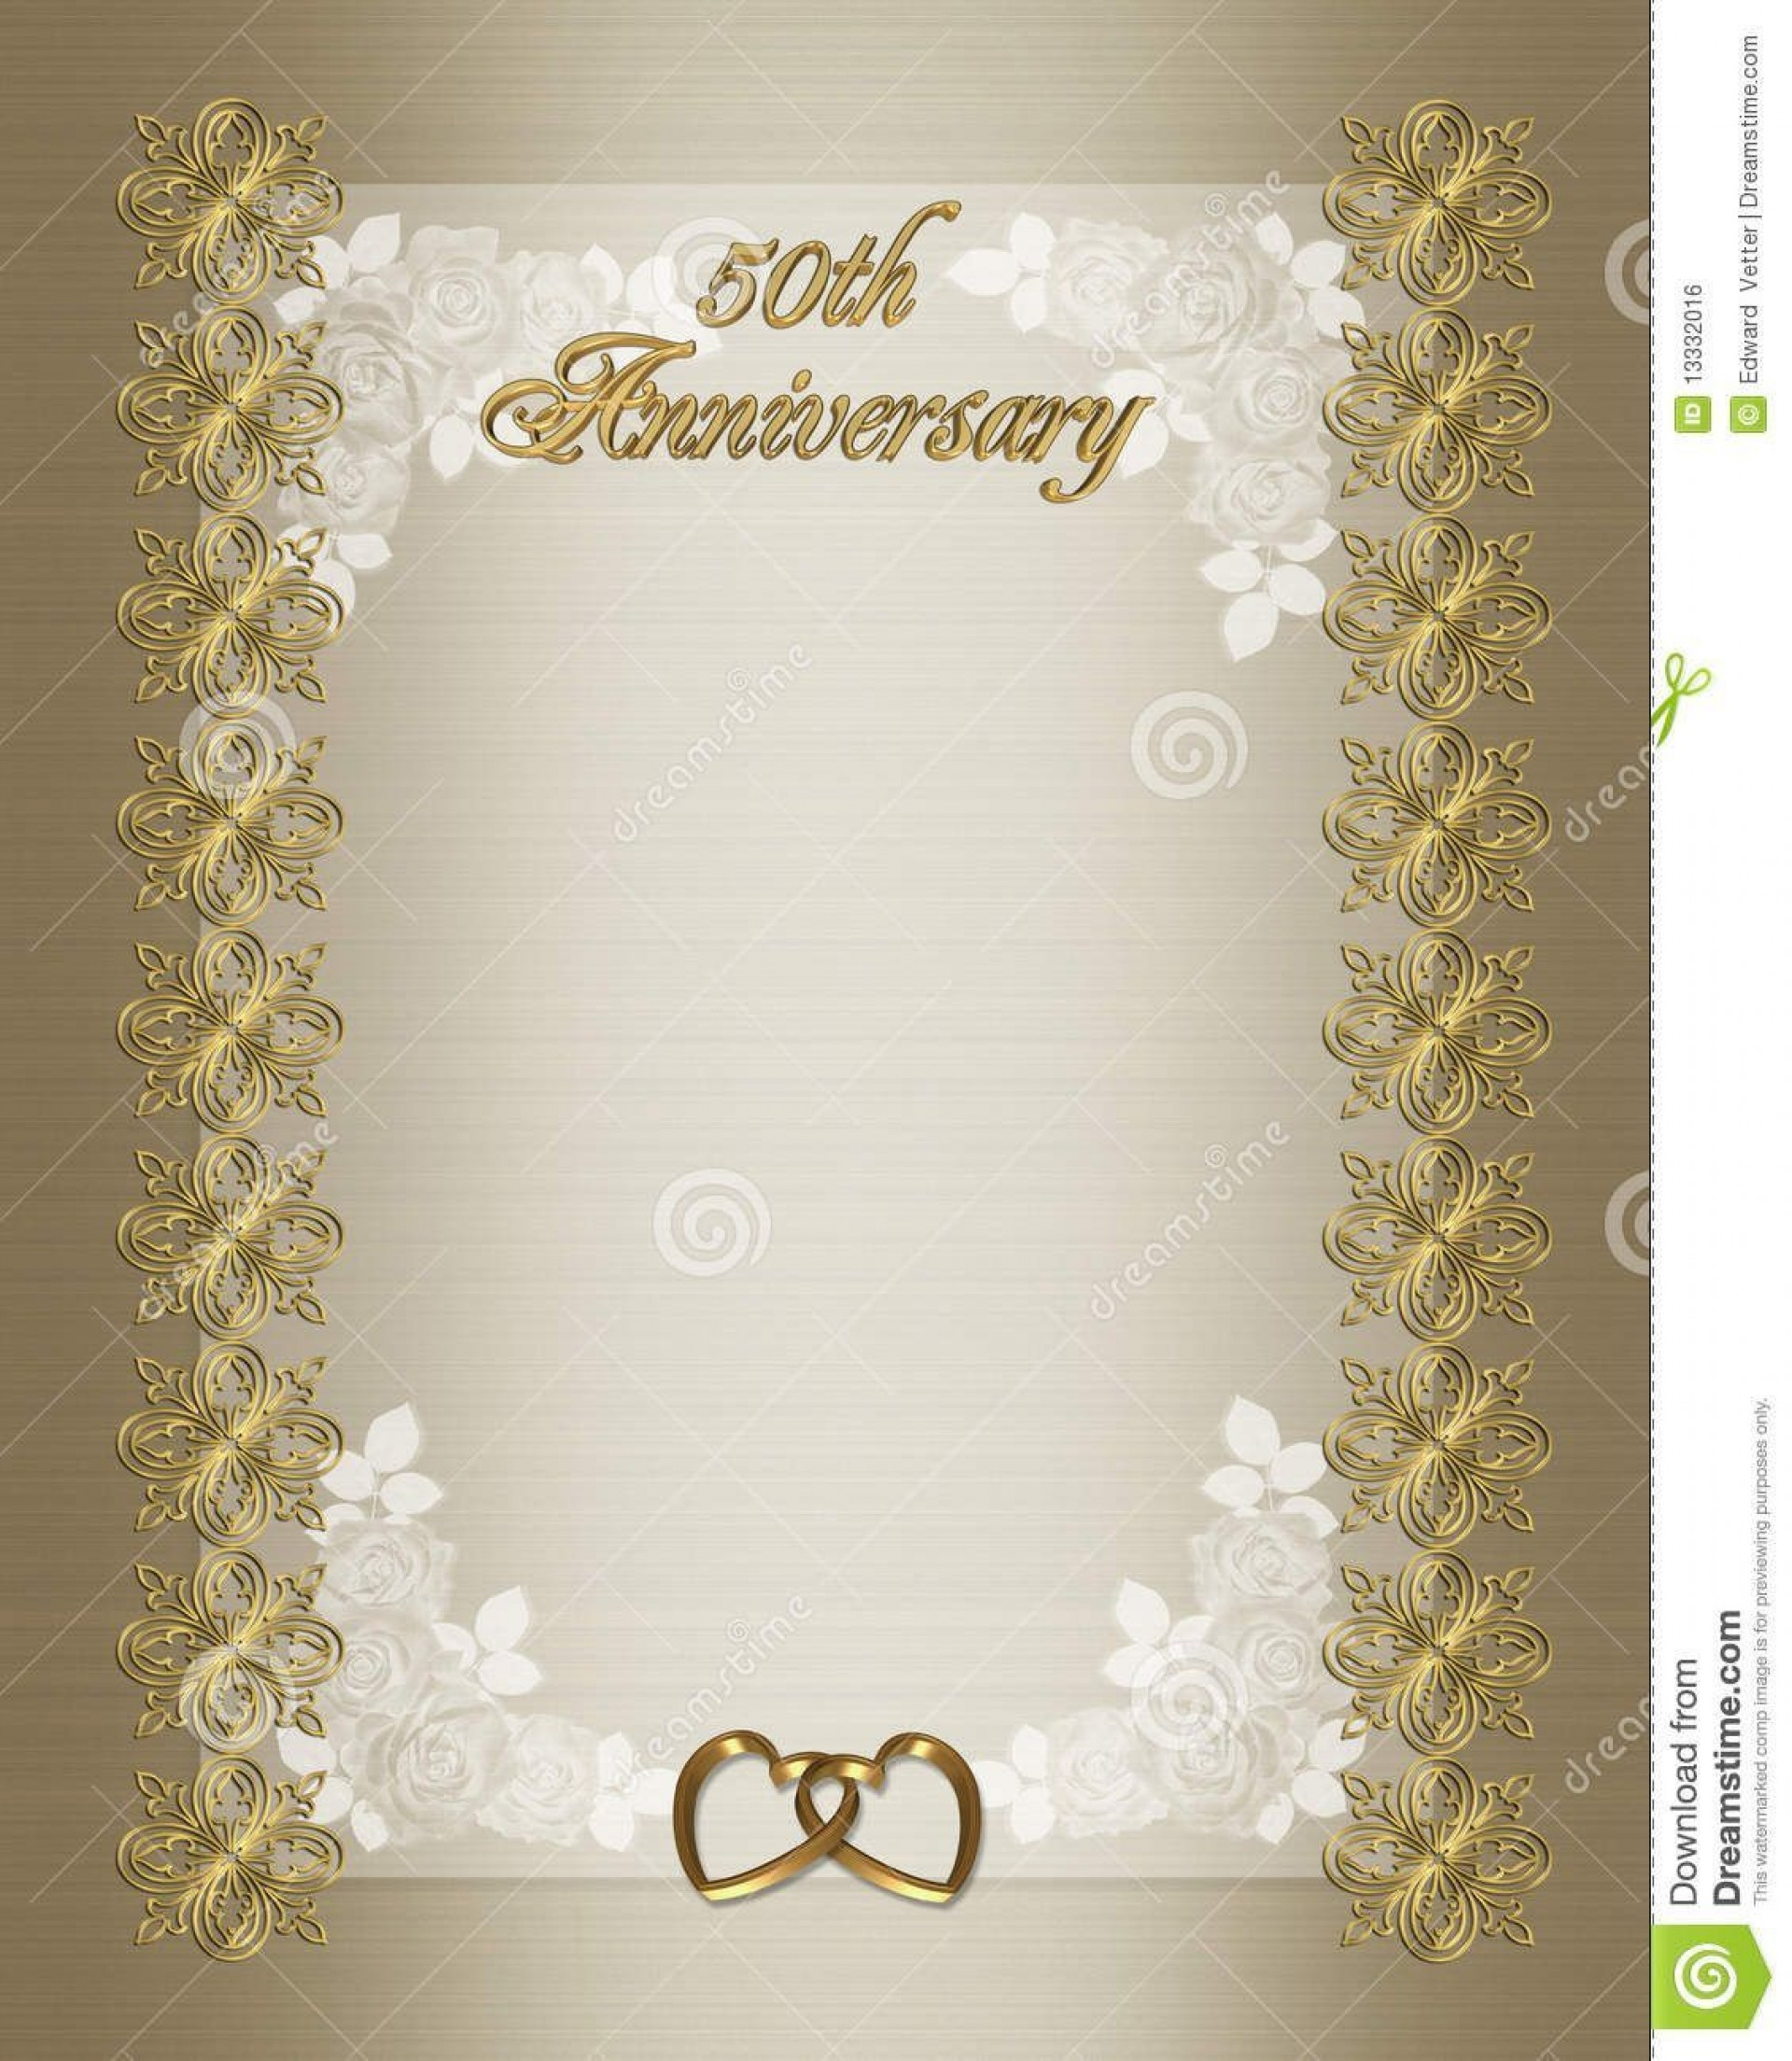 008 Archaicawful 50th Wedding Anniversary Invitation Template Free Download Concept  Golden1920